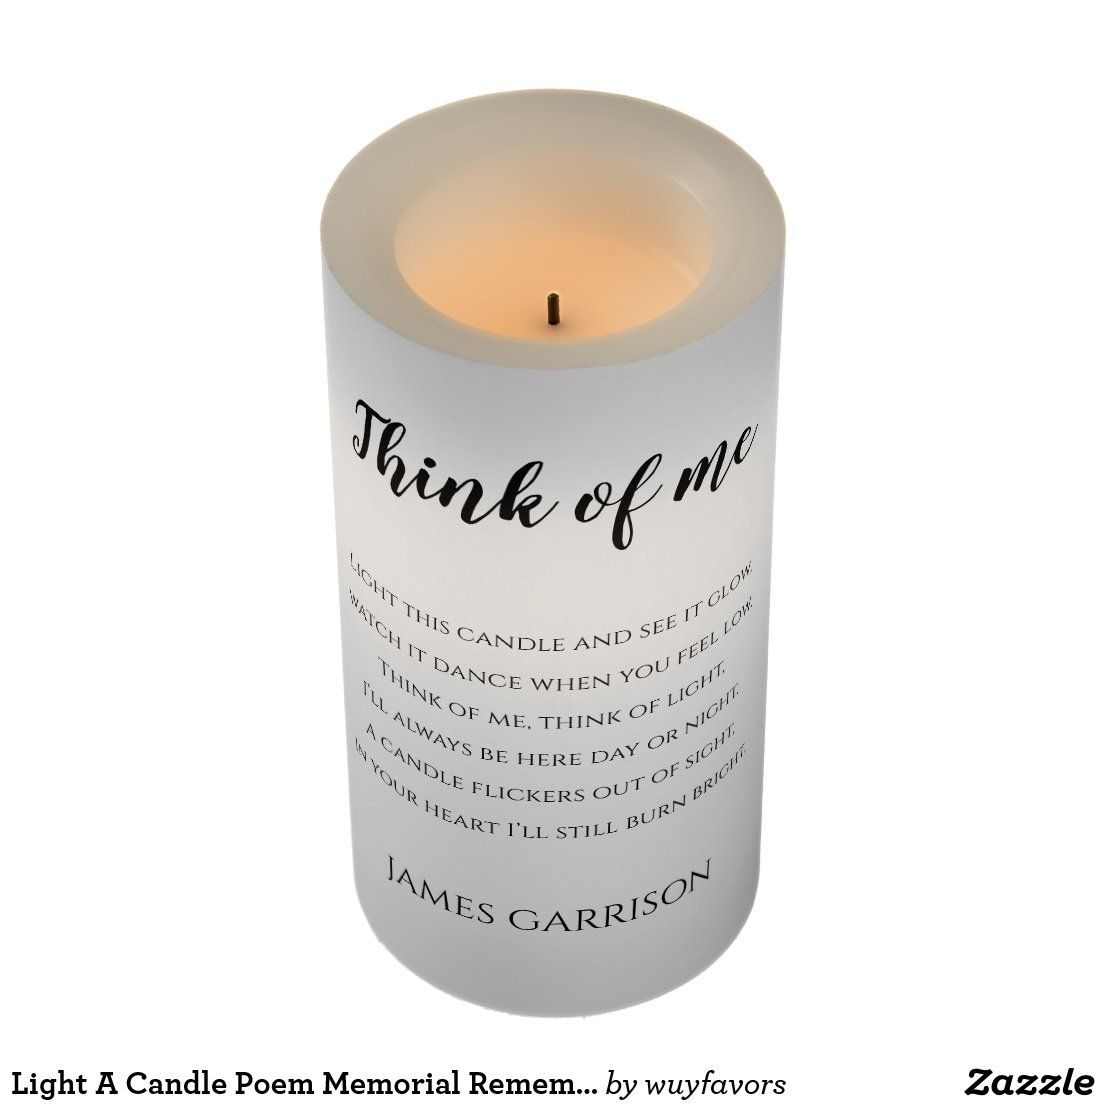 Light a candle poem memorial remembrance in